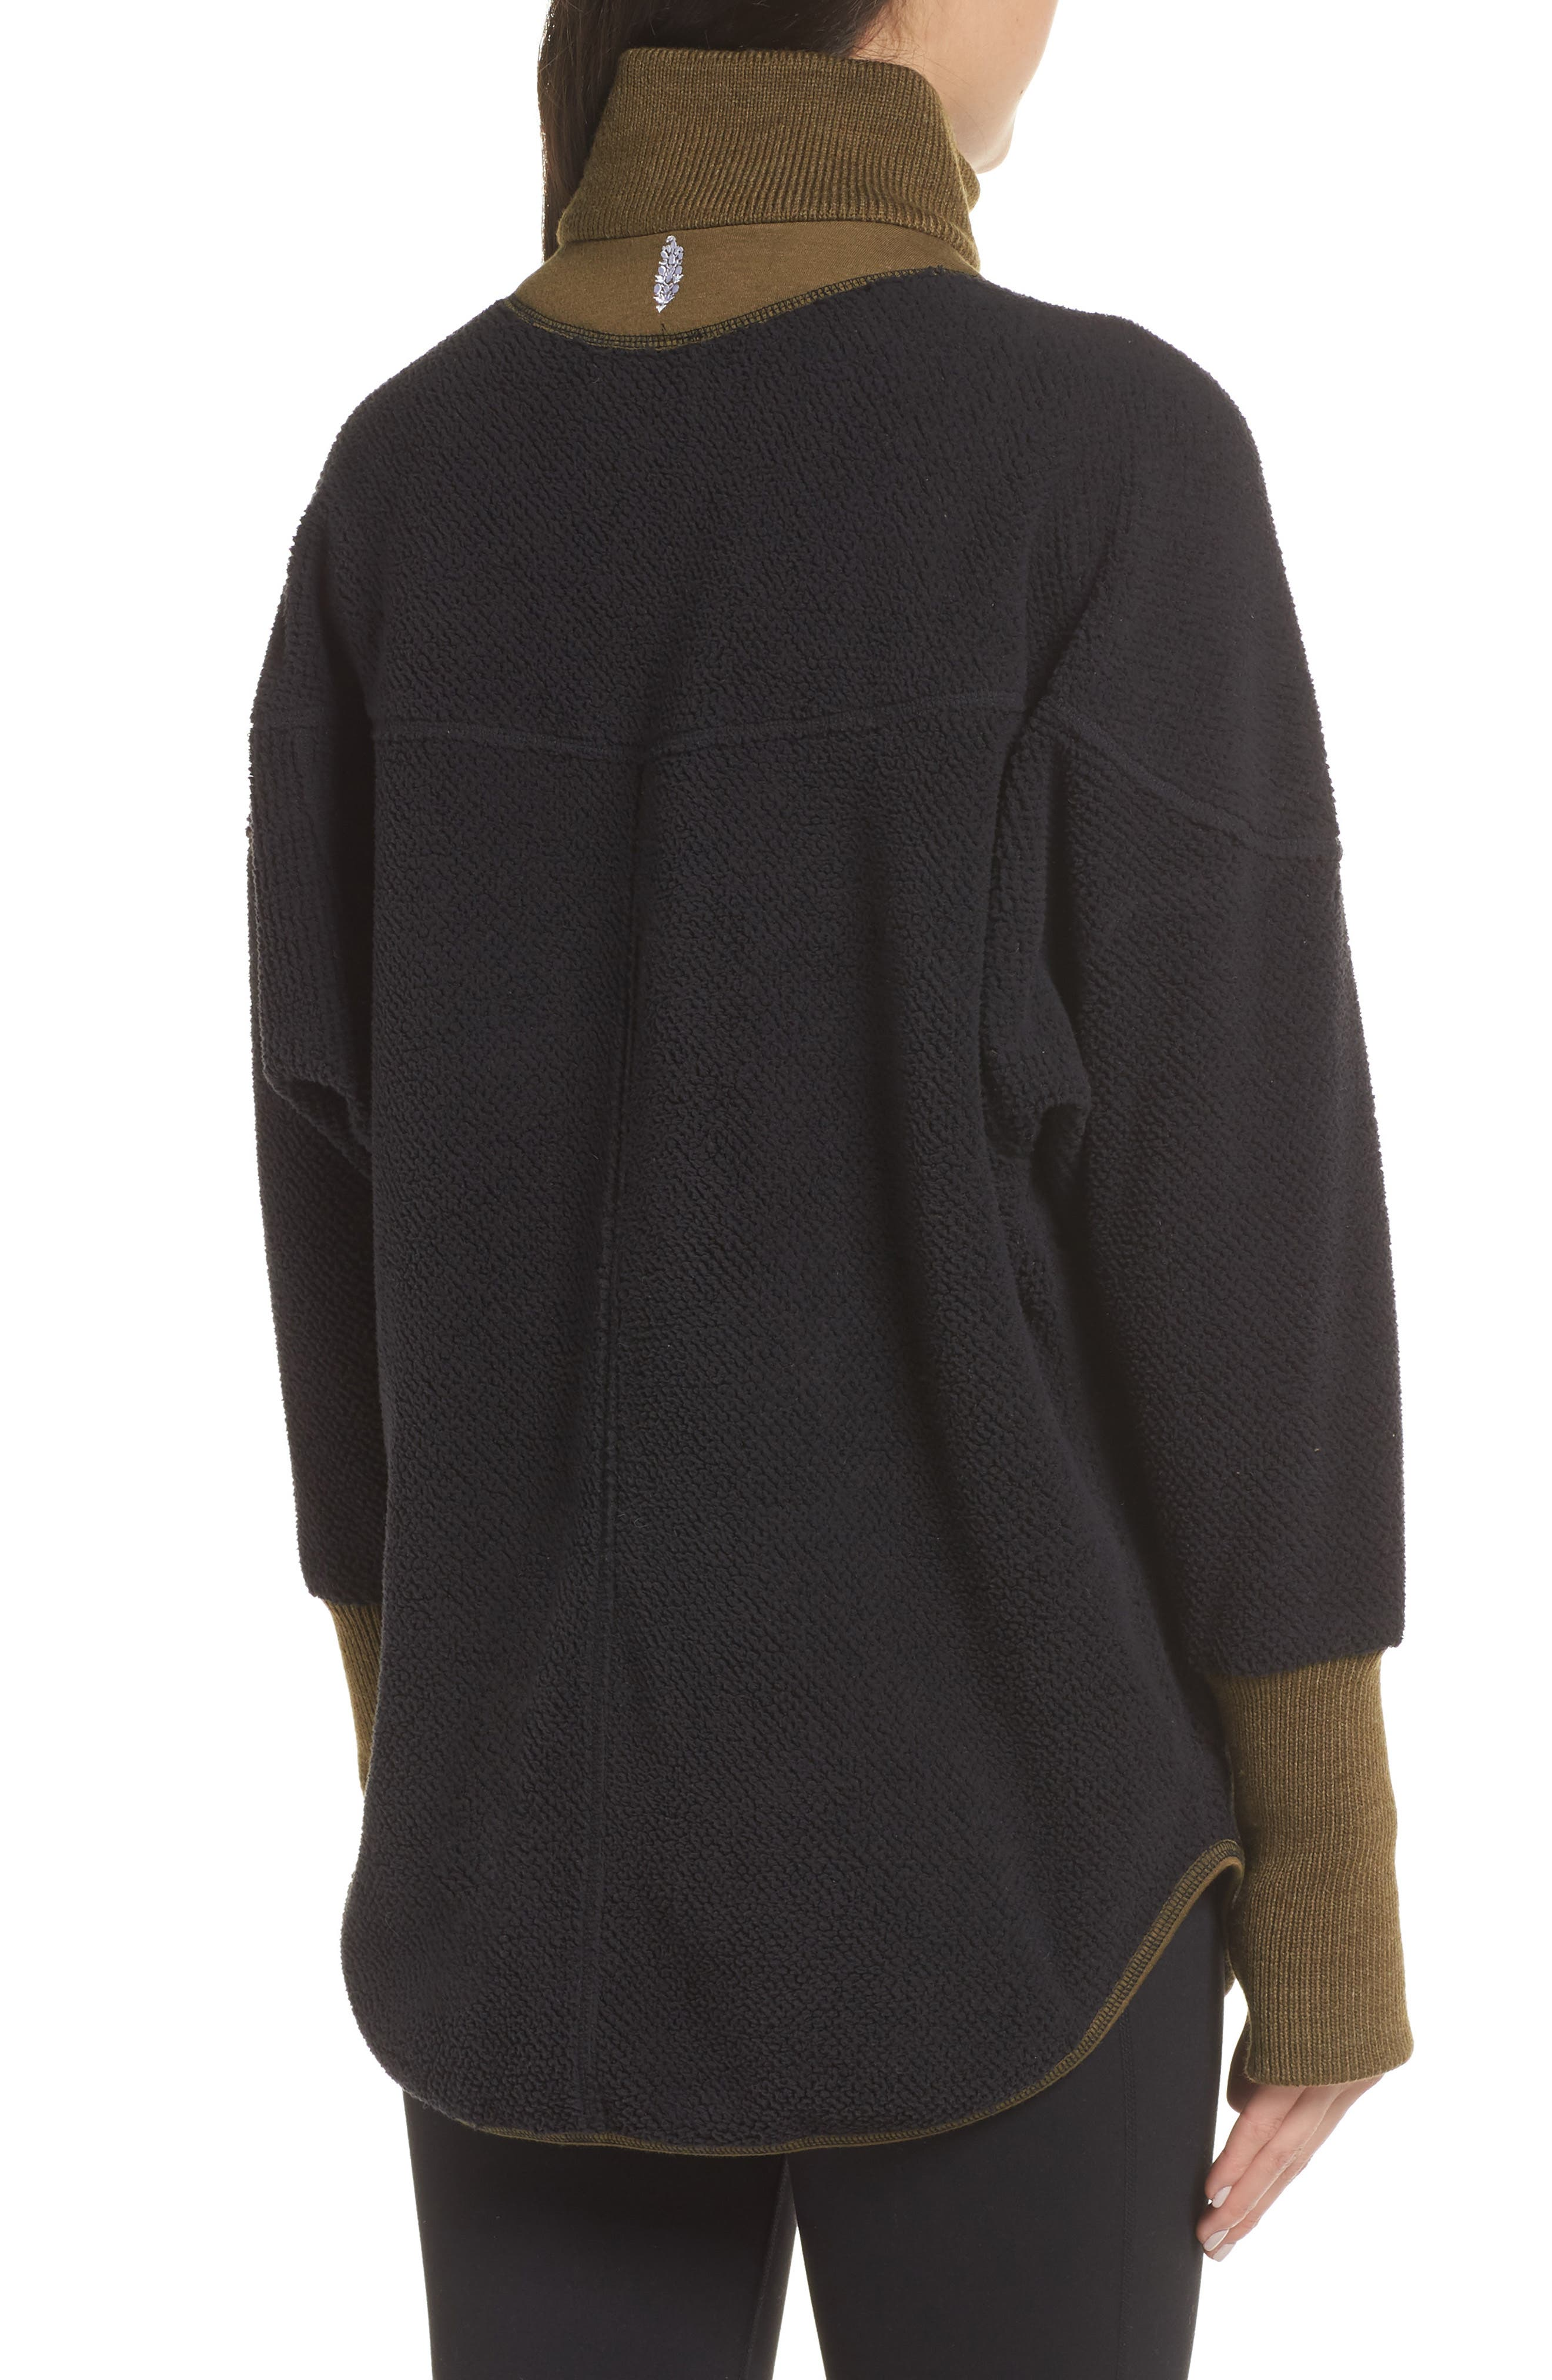 Free People FP Movement Mountain Dreaming Reversible Sweatshirt,                             Alternate thumbnail 3, color,                             BLACK